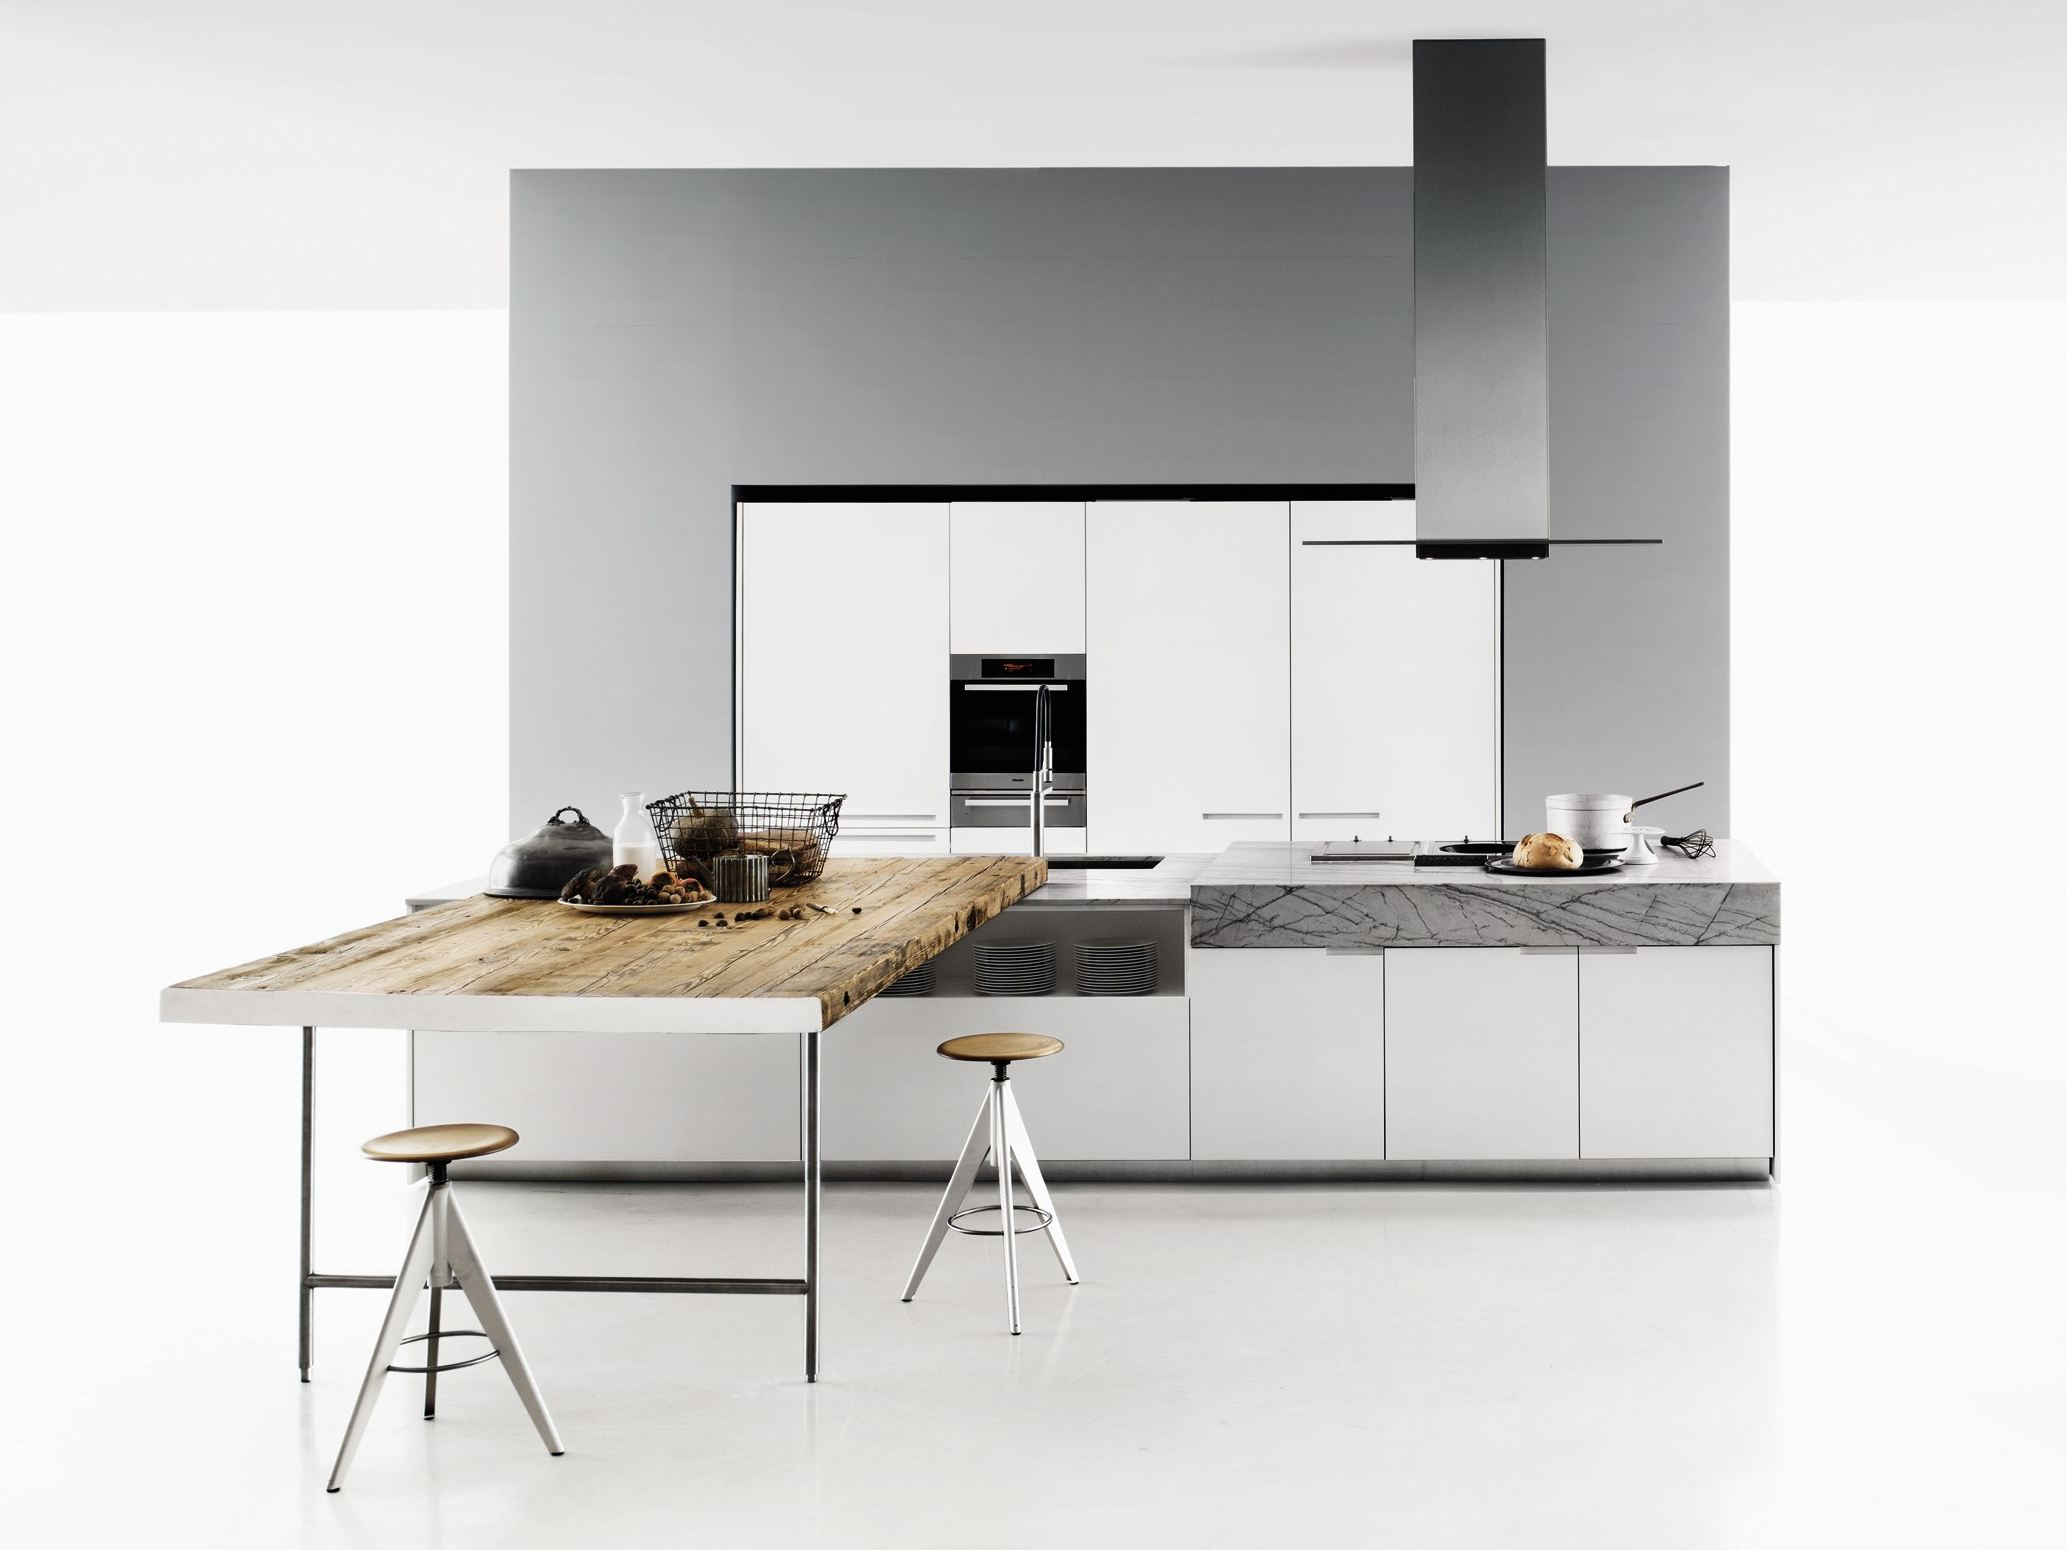 Cuisine Boffi Kitchen With Island Duemilaotto By Boffi Design Piero Lissoni